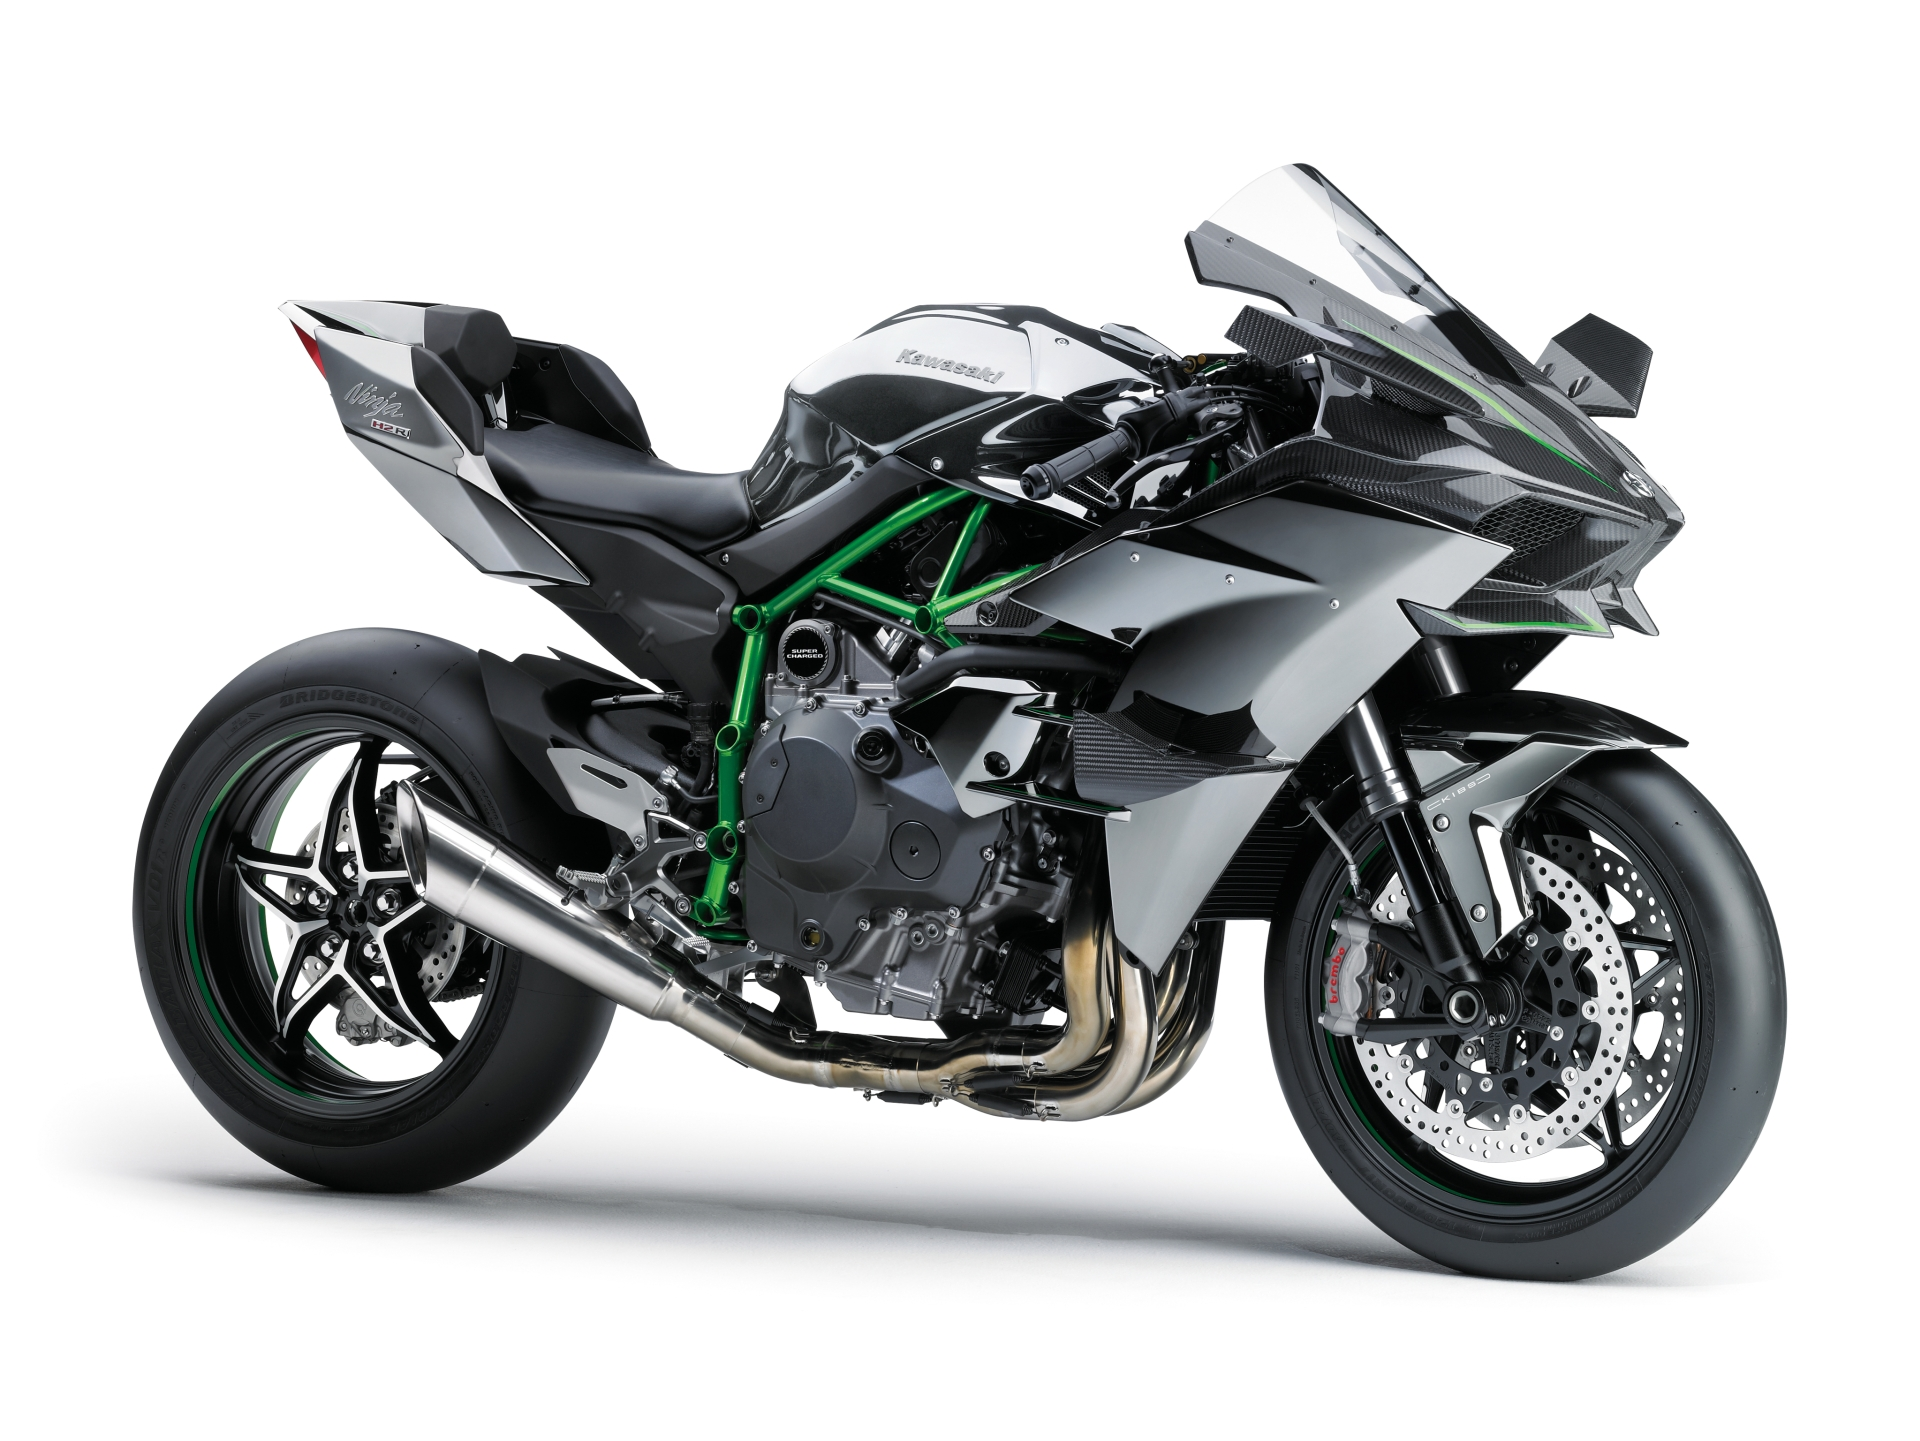 Kawasaki Ninja H2 and H2R Prices Confirmed - autoevolution